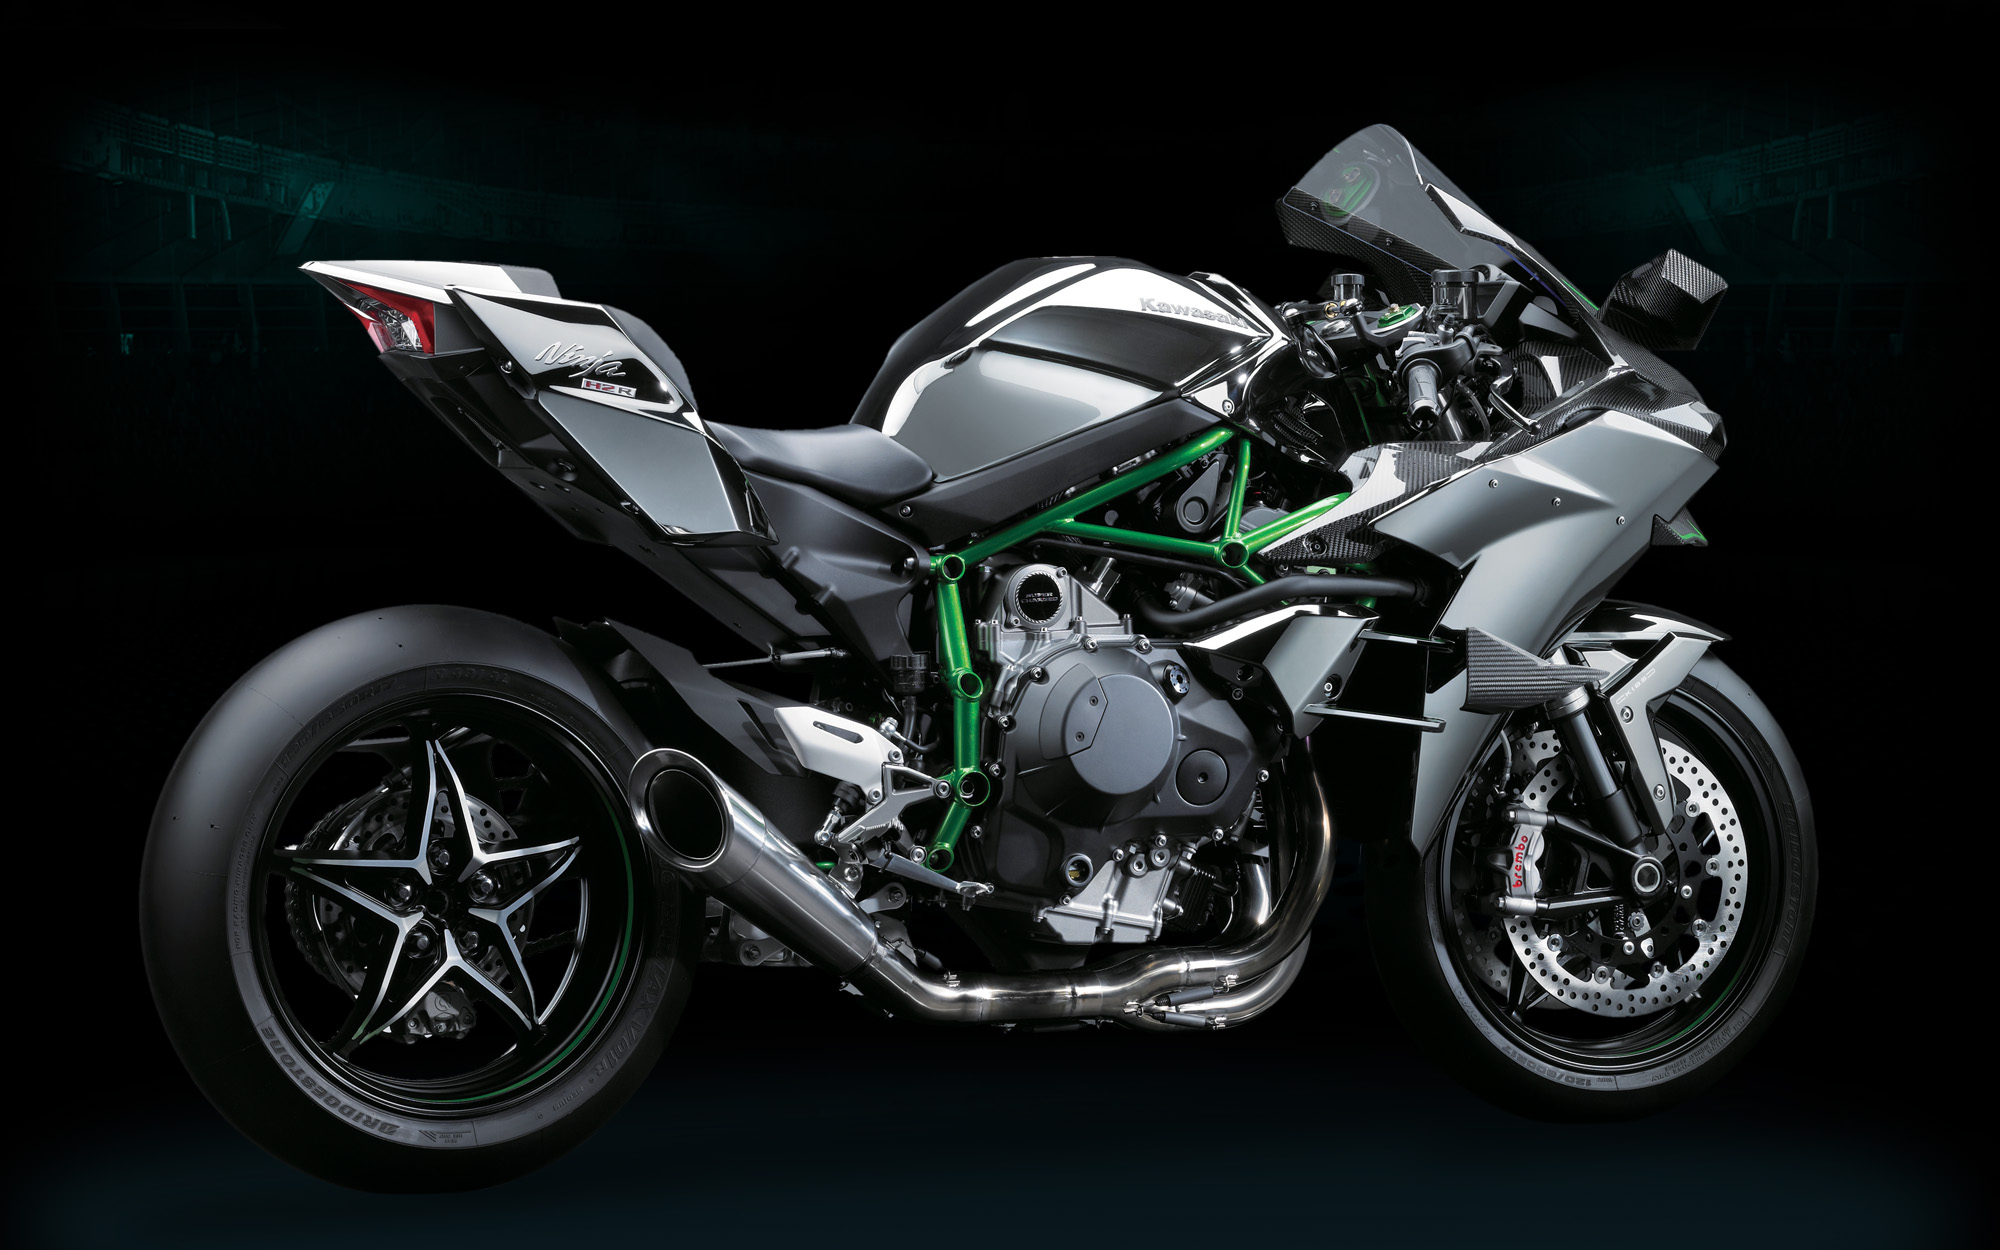 kawasaki ninja h2r pics and video show a game changer autoevolution. Black Bedroom Furniture Sets. Home Design Ideas